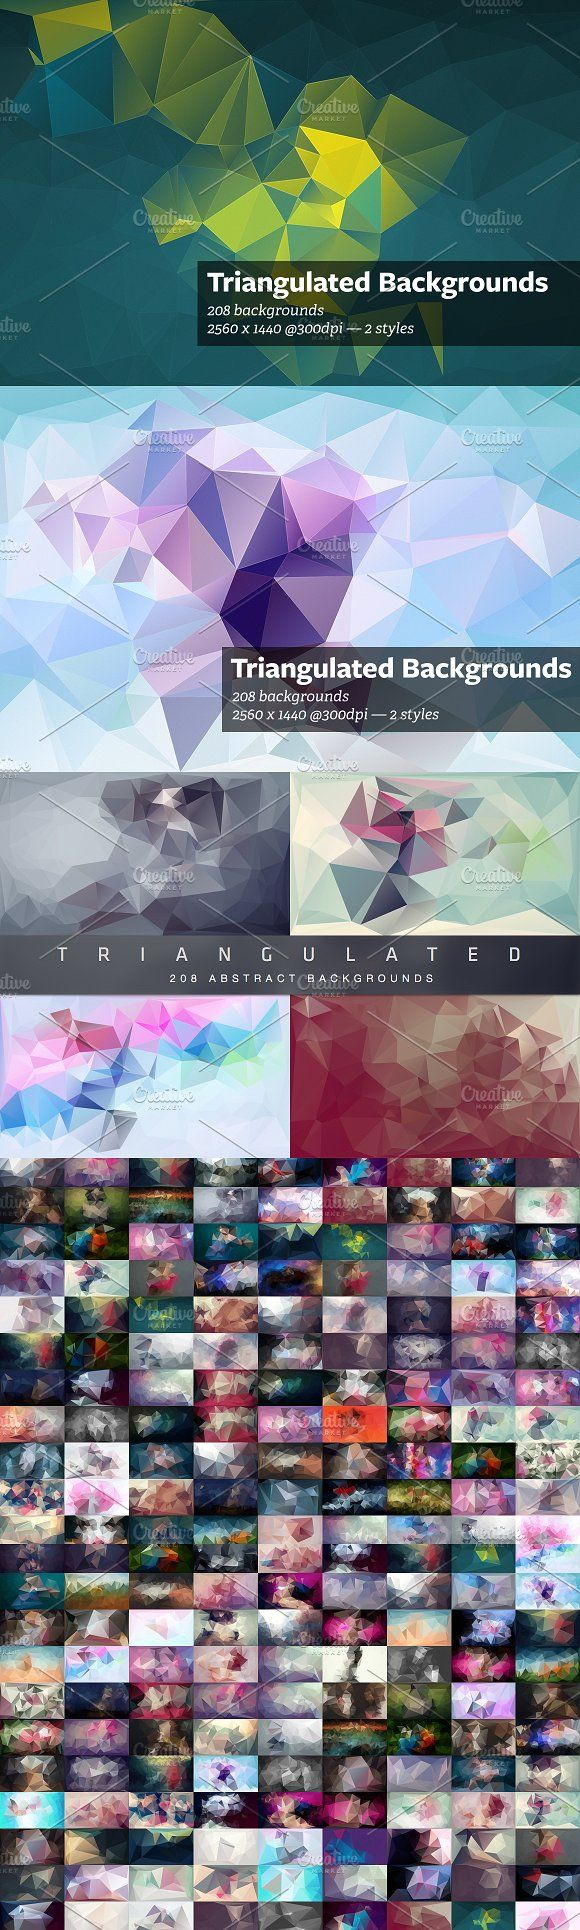 Triangulated - Abstract Backgrounds by beto on @creativemarket